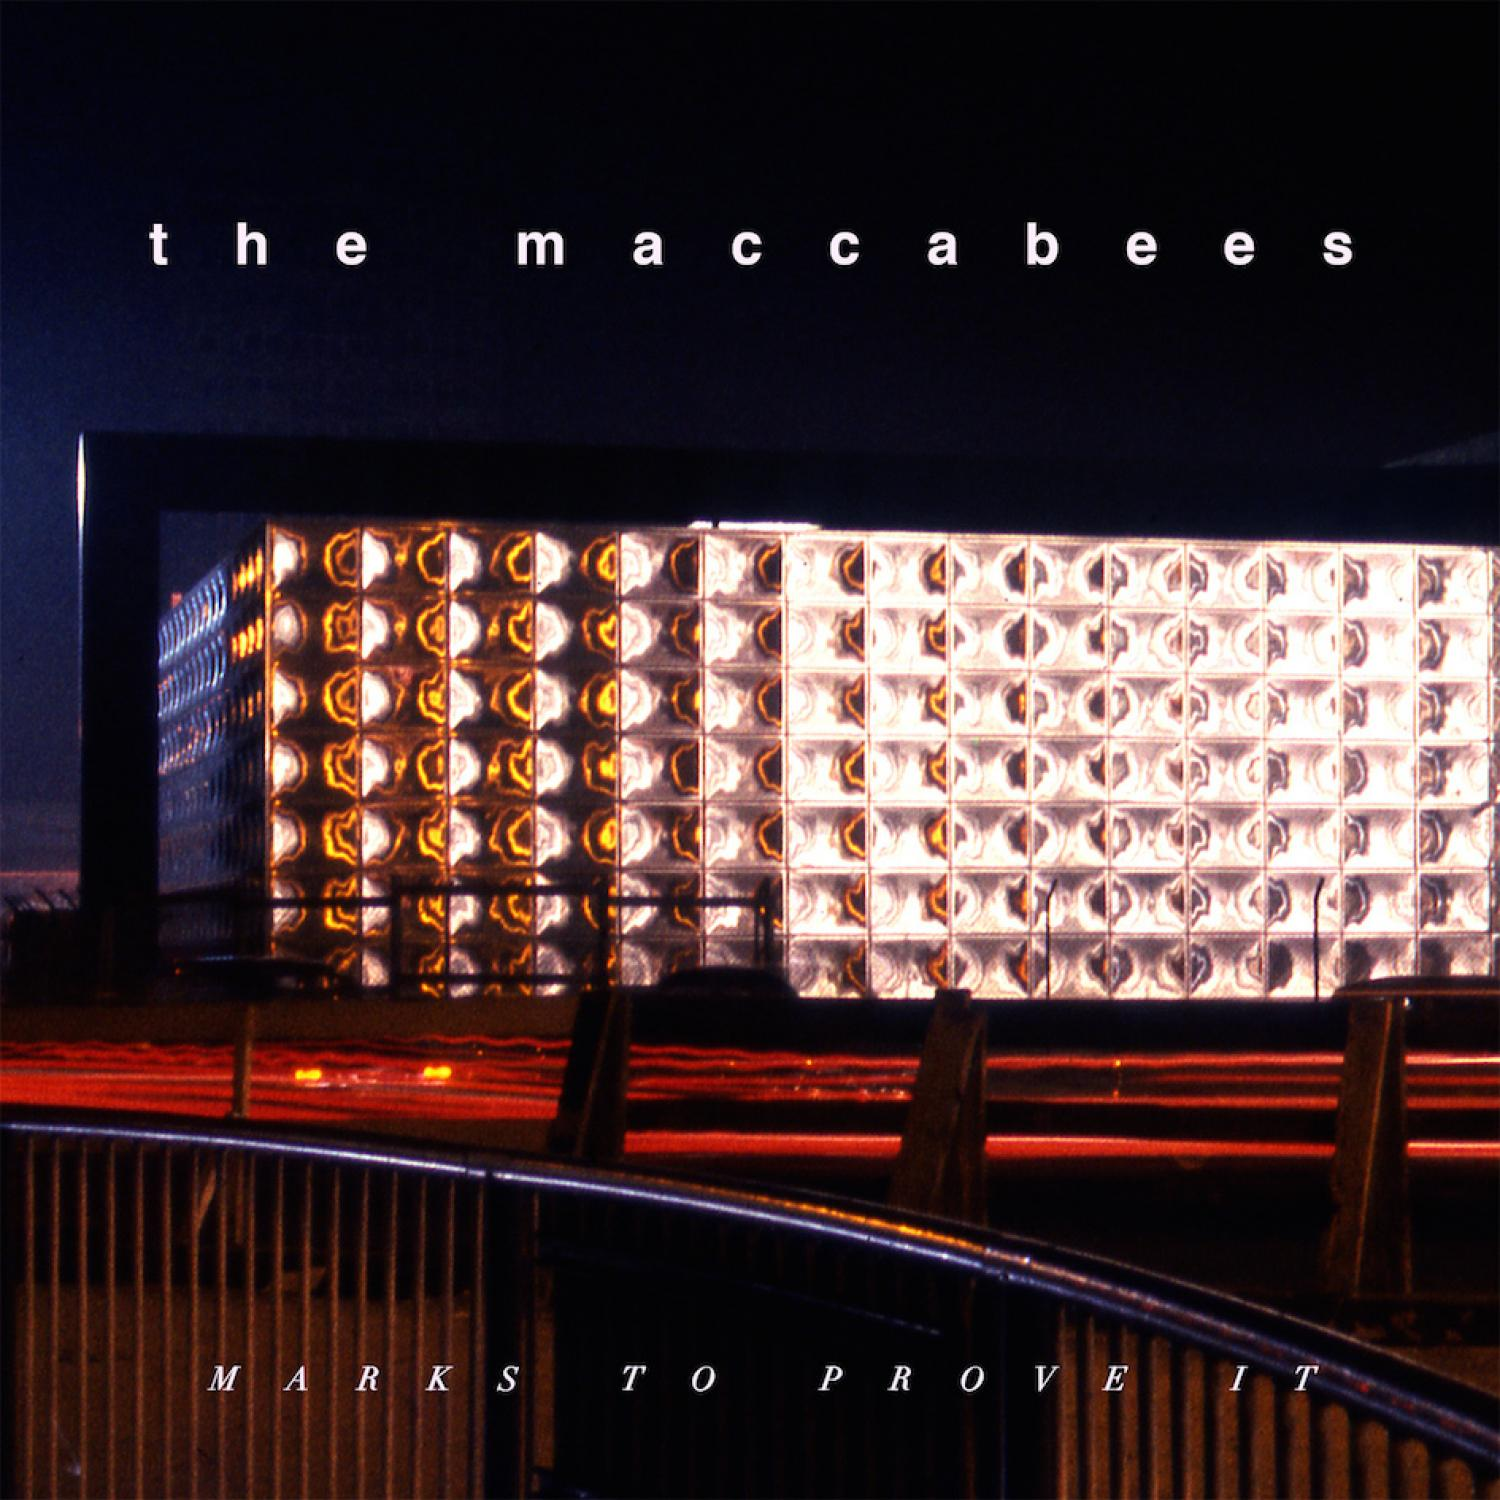 Album review: Marks to Prove It by The Maccabees